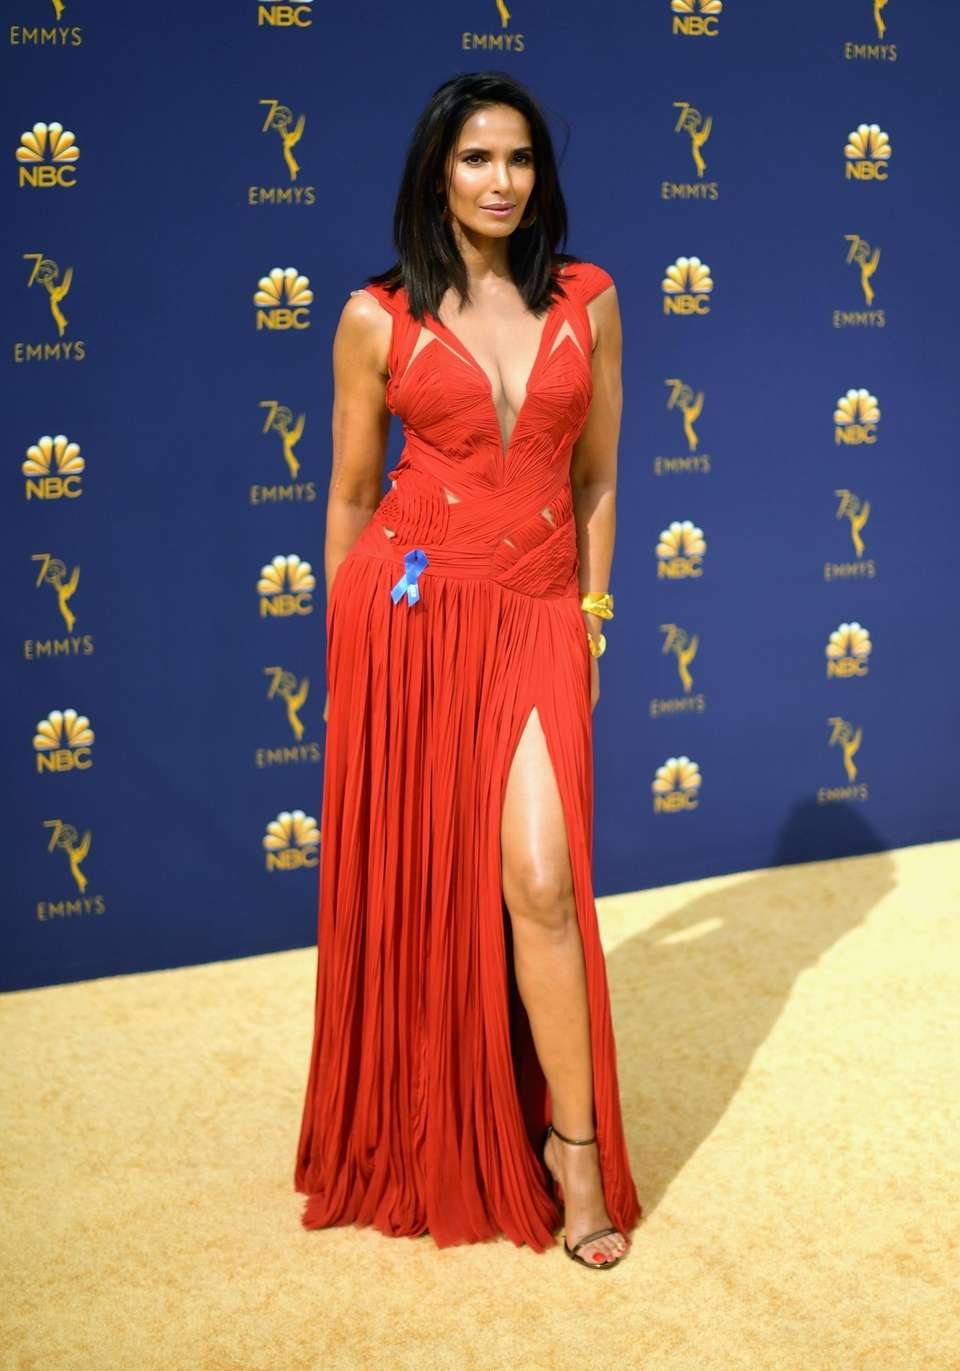 Padma Lakshmi arrives for the ceremony.